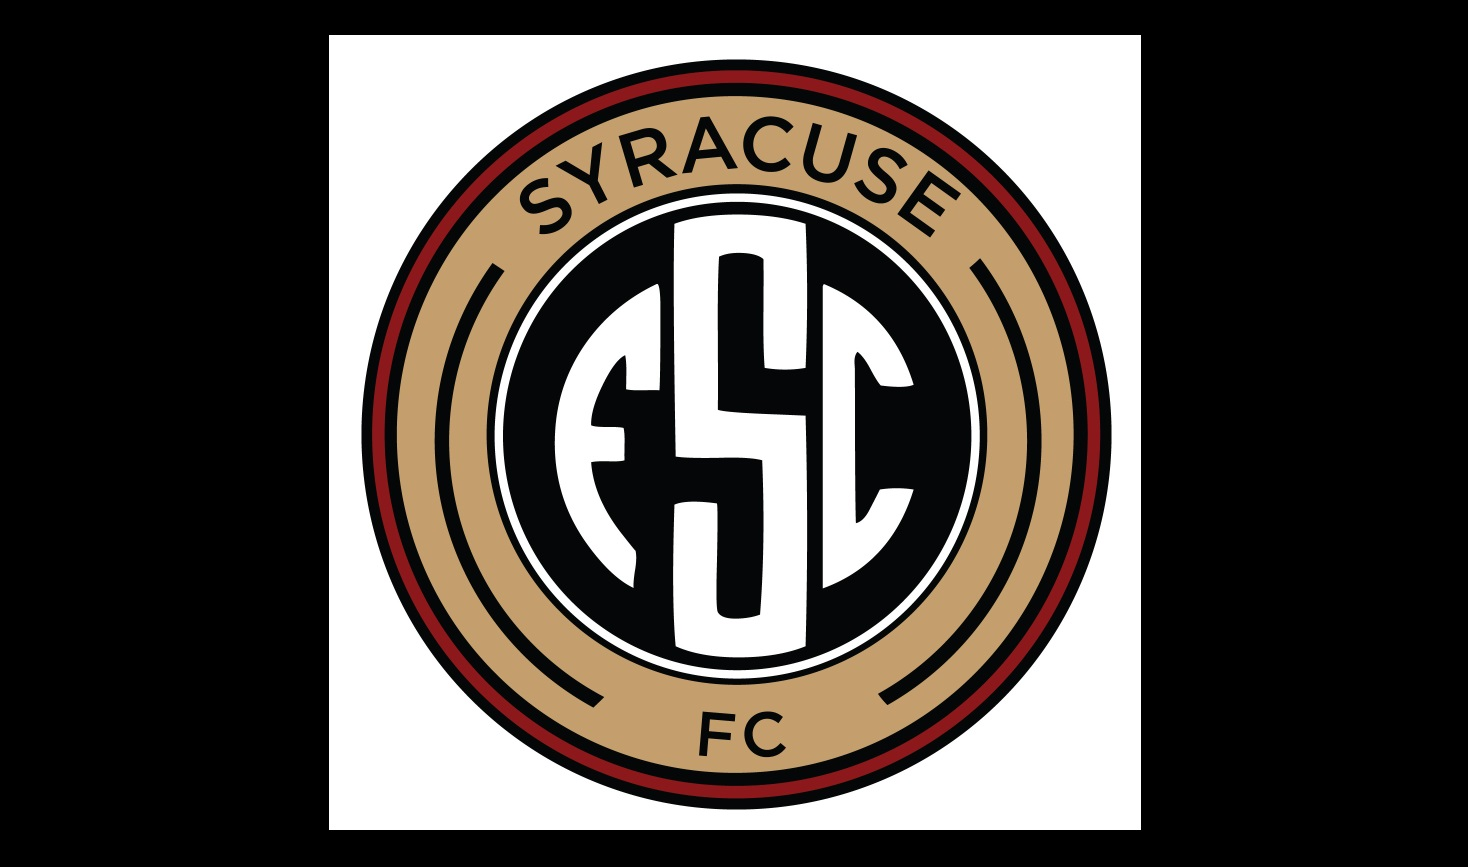 The new logo for Syracuse FC, which joined the National Premier Soccer League on Wednesday.